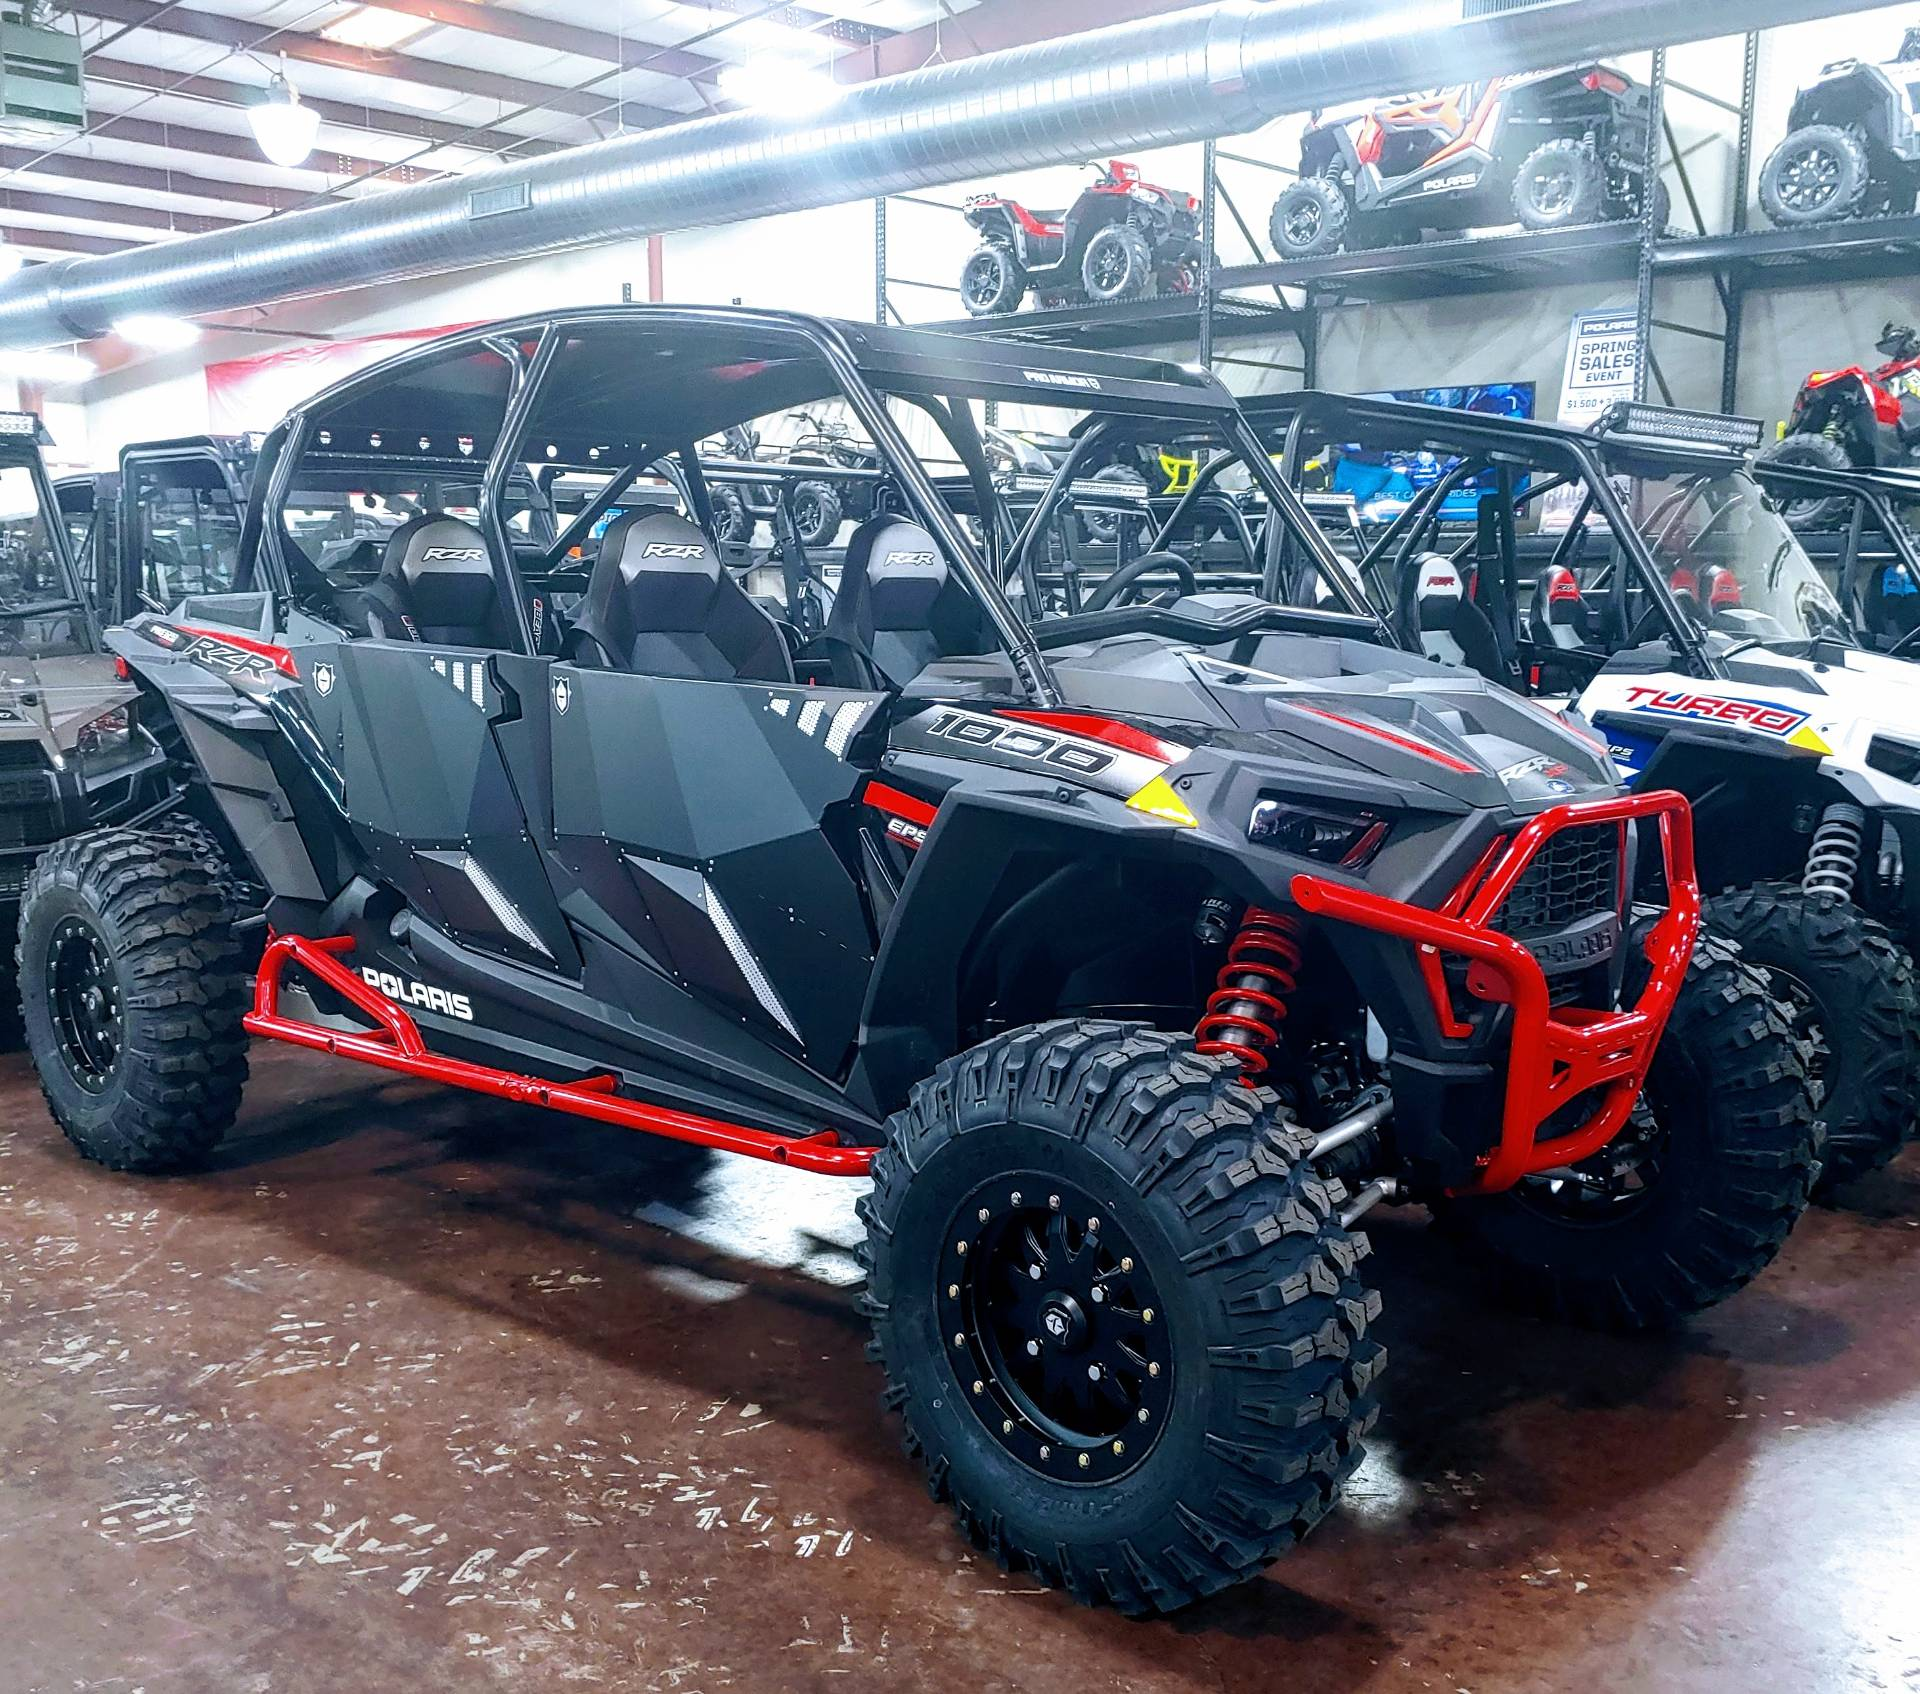 2019 Polaris RZR XP 4 1000 EPS in Statesville, North Carolina - Photo 1